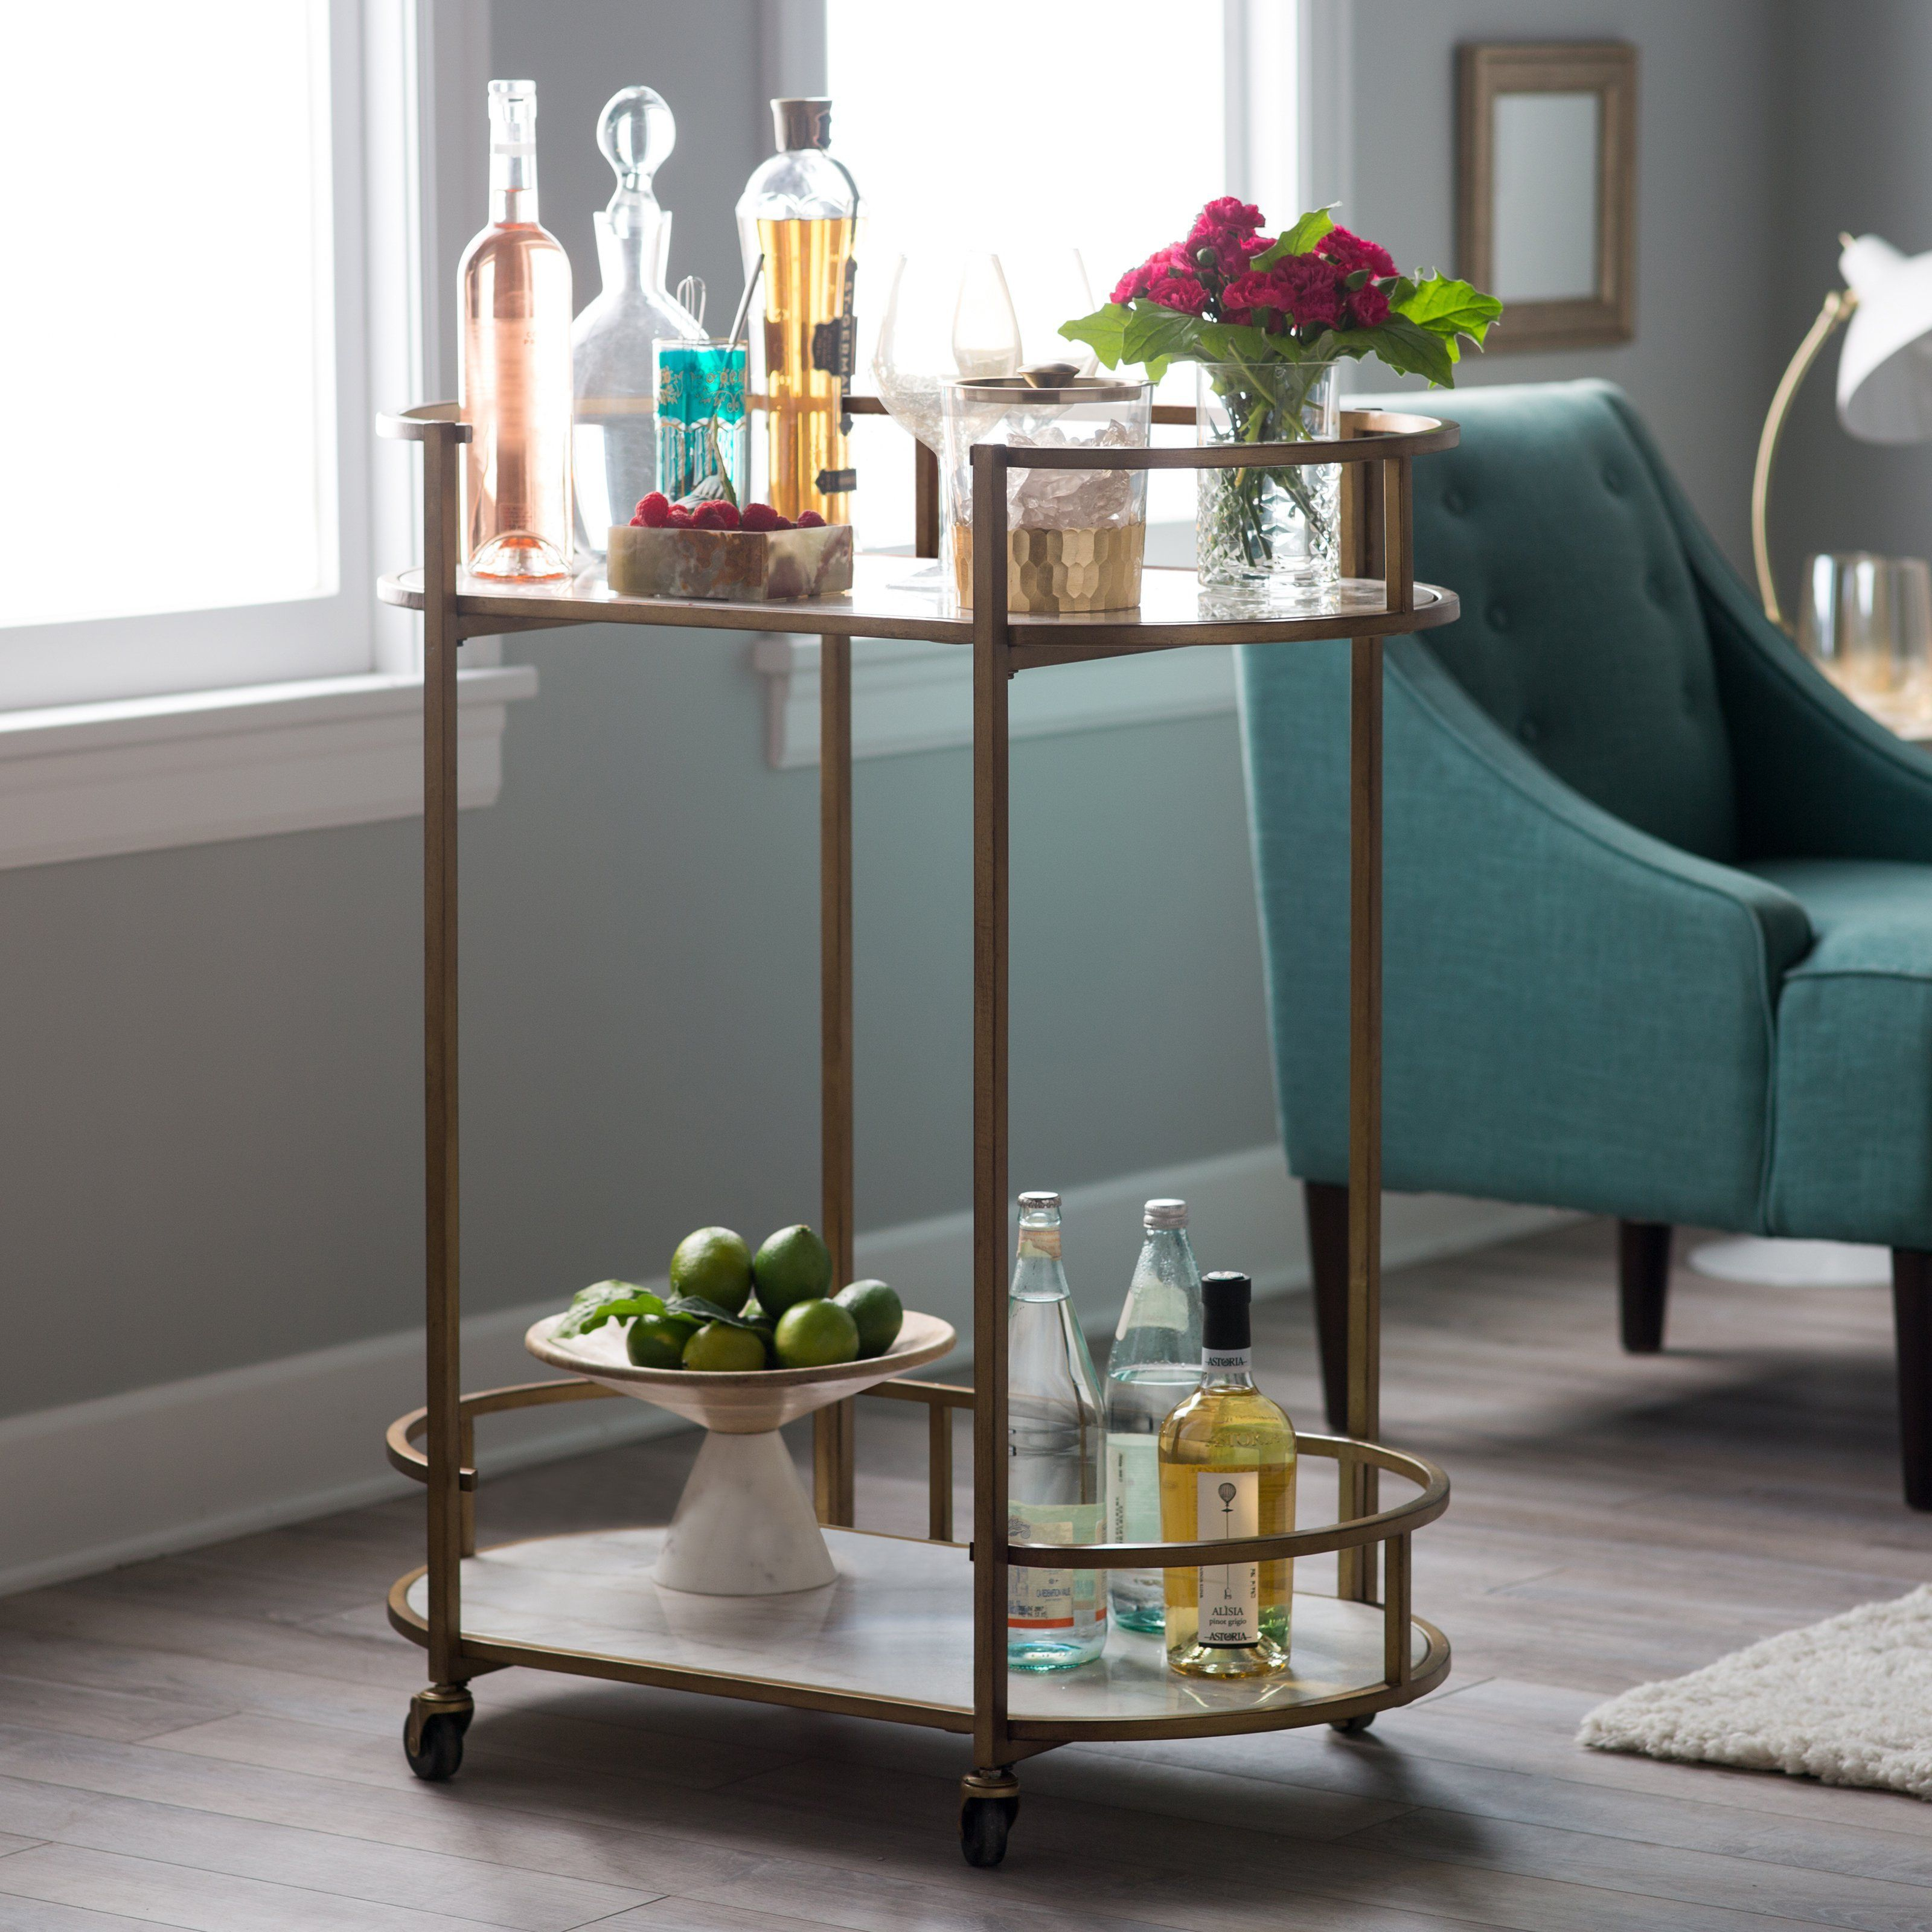 Belham Living Toscano Oval Bar Cart W/ Marble Shelves – Serving In Parsons Grey Solid Surface Top & Brass Base 48x16 Console Tables (View 24 of 30)